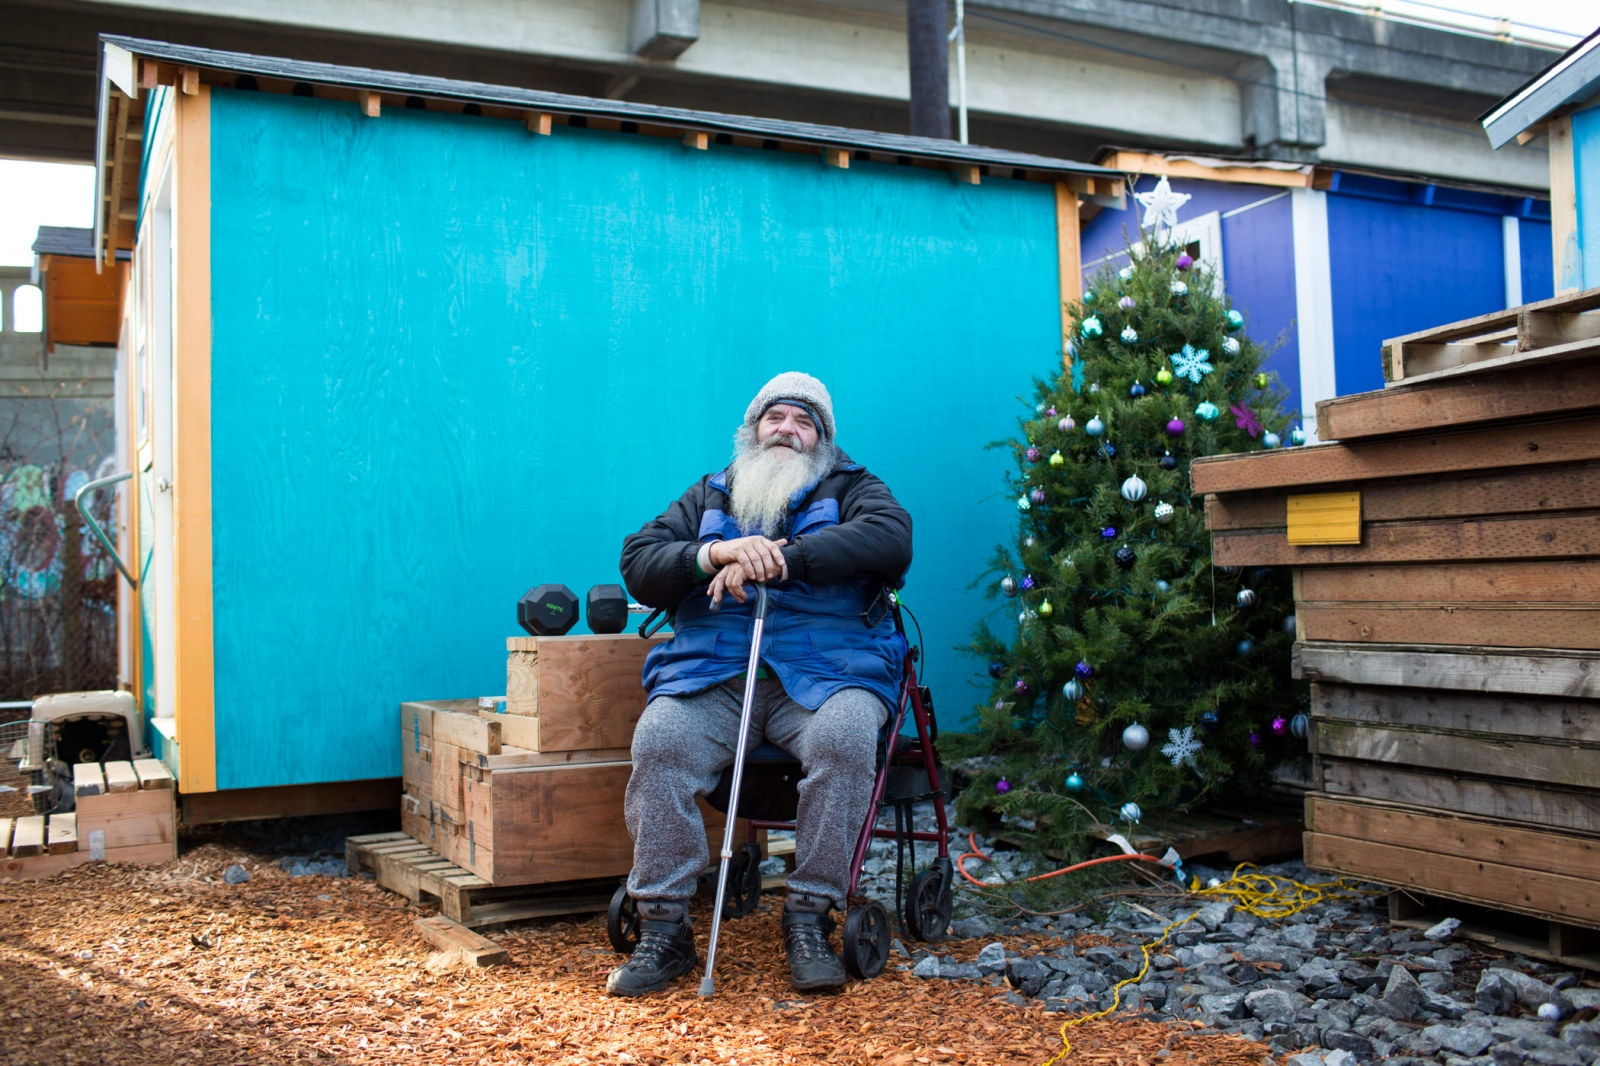 Joseph 'Panda' Procella, 55, at Tent City 5 tiny houses in Seattle.  'Homeless at Christmas' for the Guardian